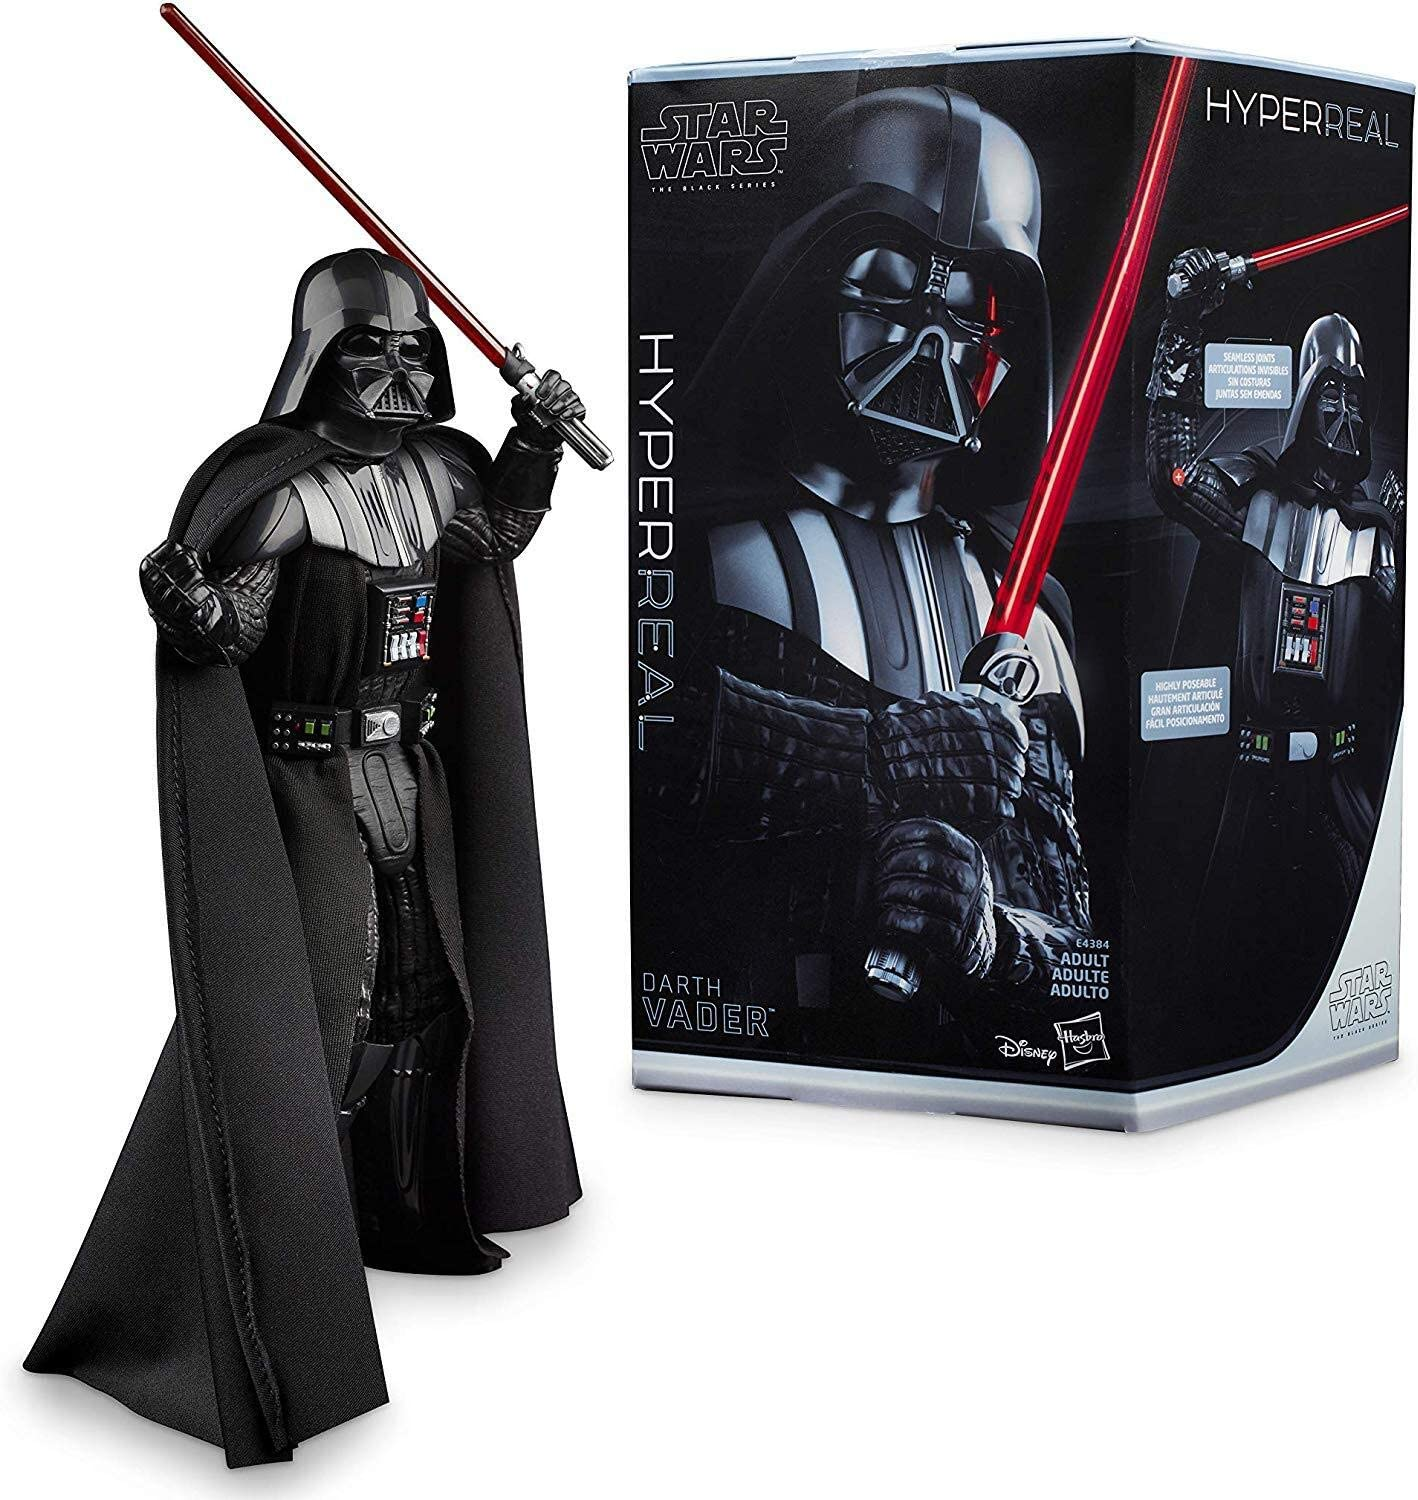 Amazon Com Star Wars The Black Series Hyperreal Episode V The Empire Strikes Back 8 Scale Darth Vader Action Figure Collectible Toys Games